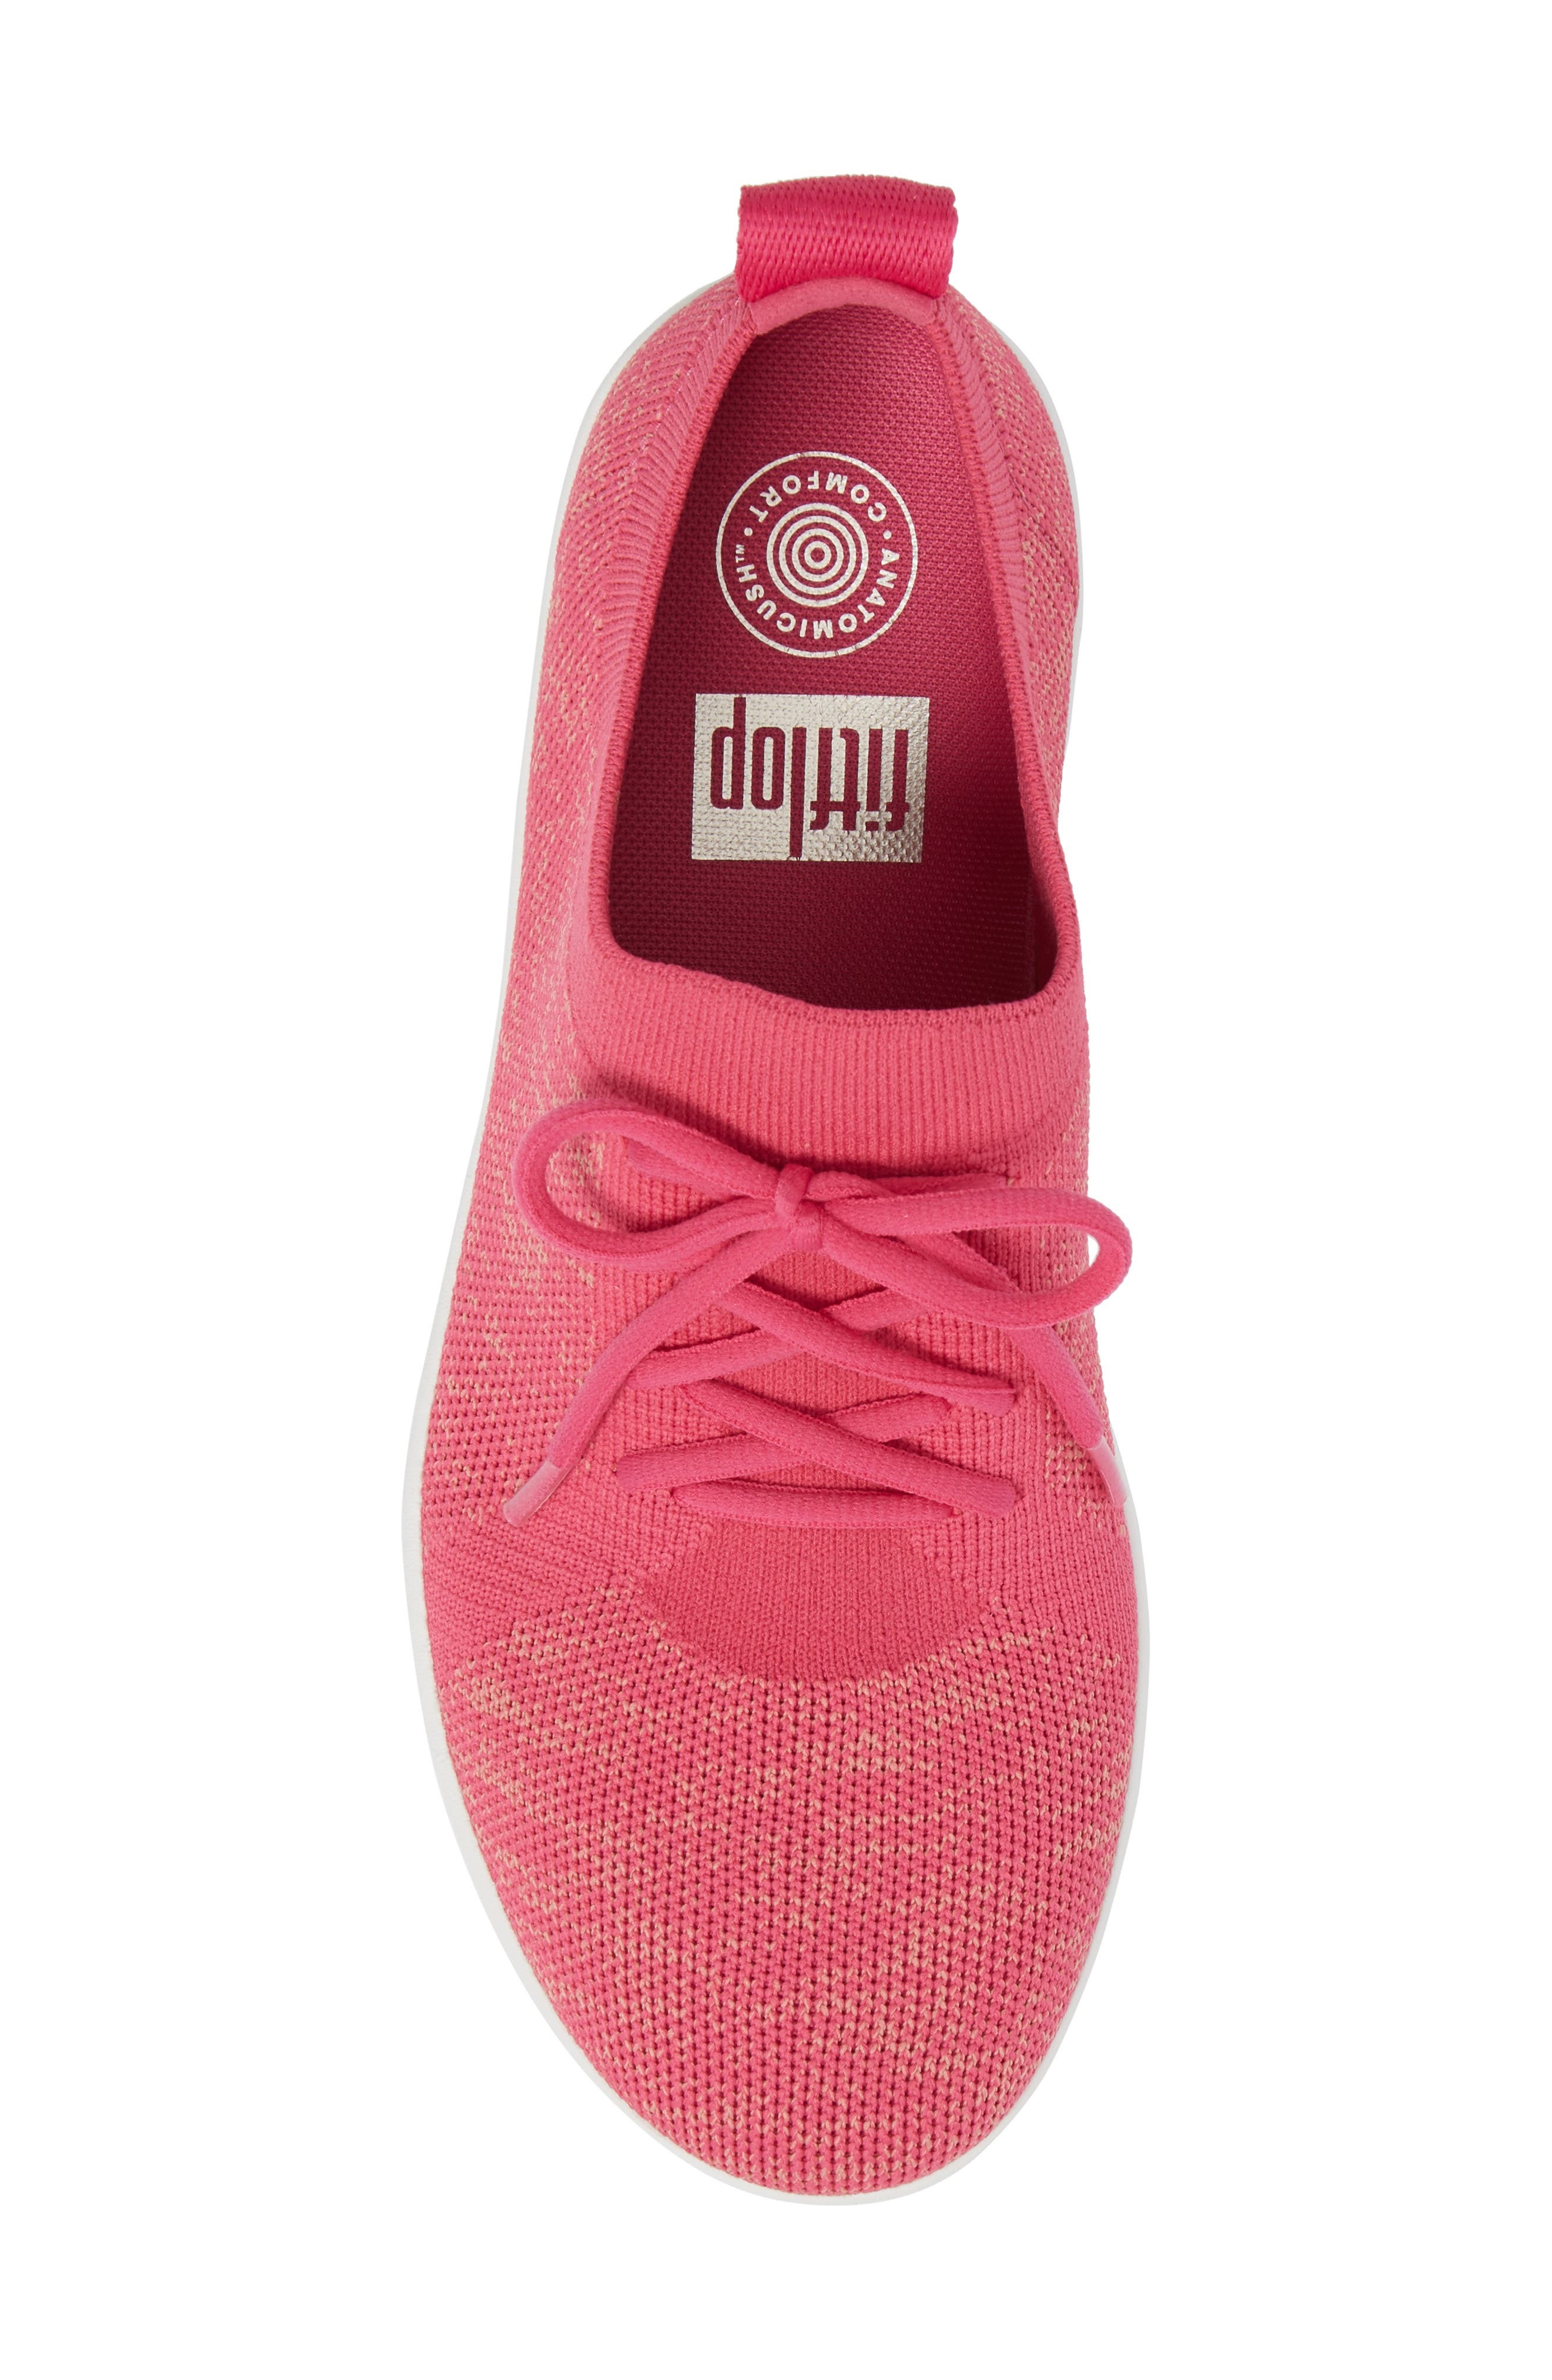 F-Sporty Uberknit<sup>™</sup> Sneaker,                             Alternate thumbnail 5, color,                             FUCHSIA/ DUSTY PINK